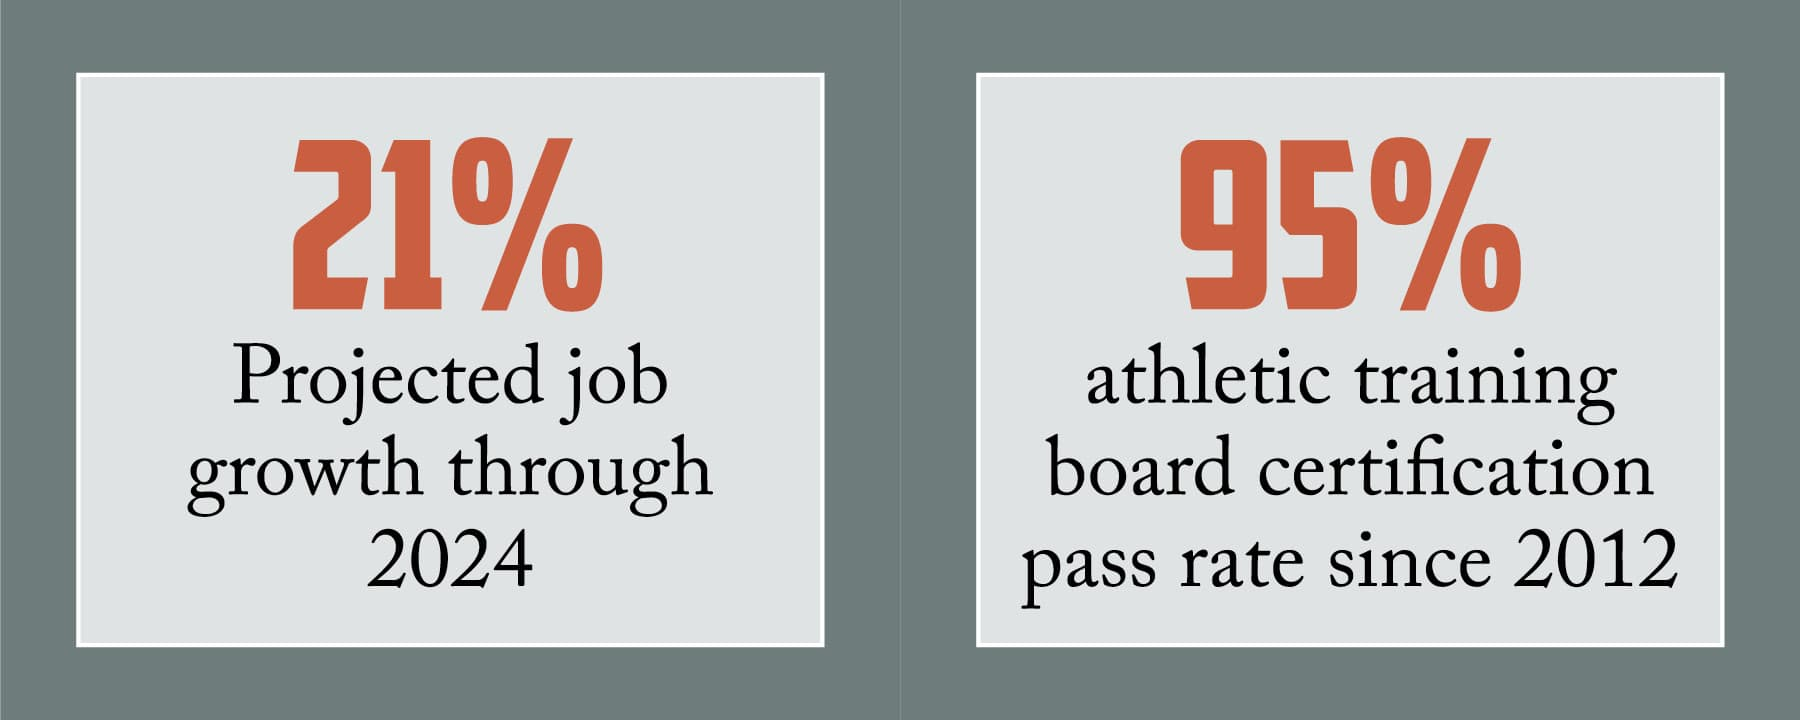 21 percent projected growth through 2024; 95 percent athletic training board certification pass rate since 2012